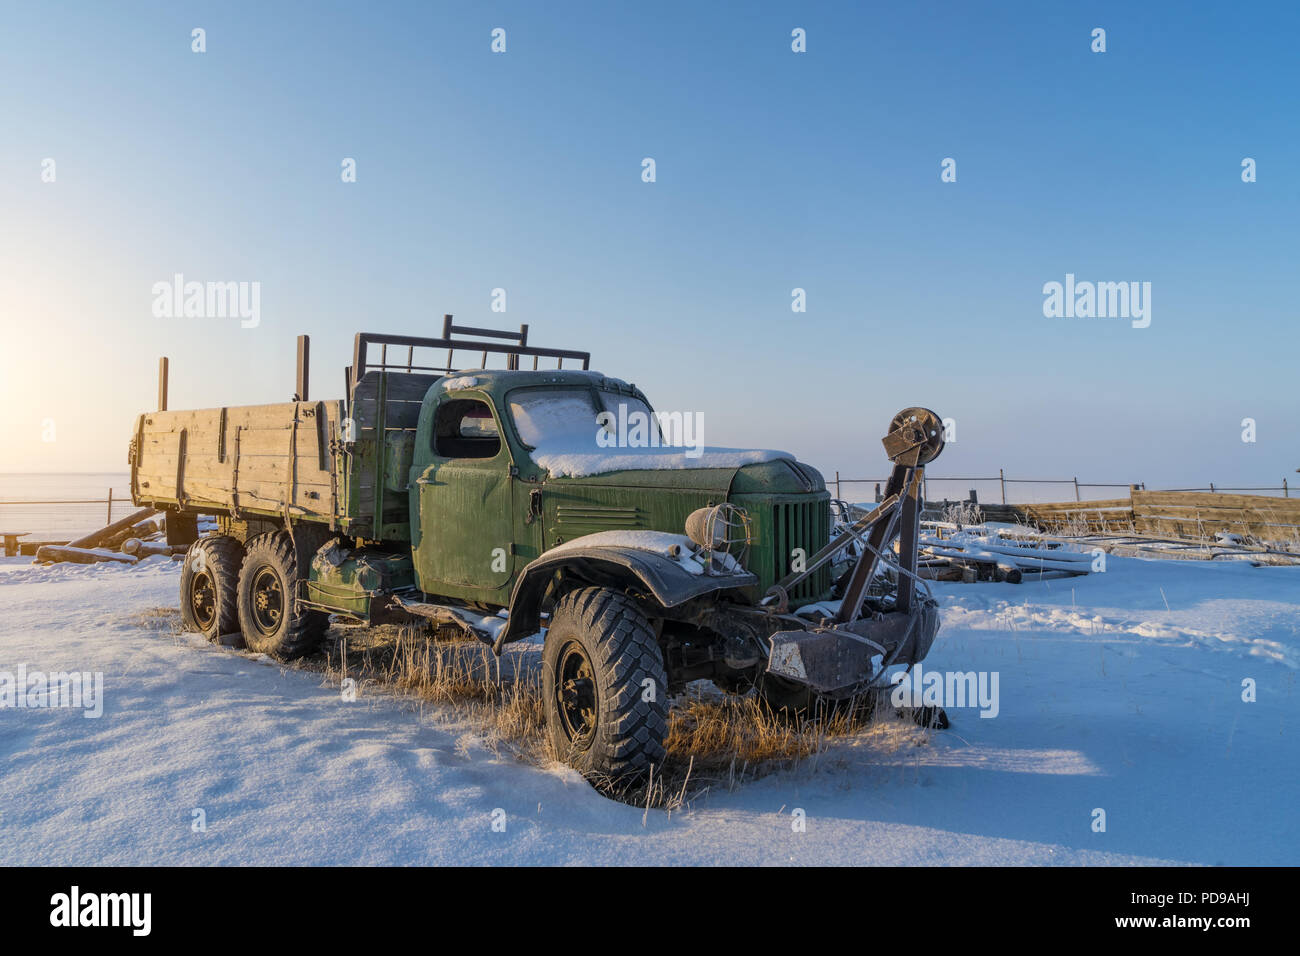 Old Russian truck covered by snow in the winter  Baikal lakeI